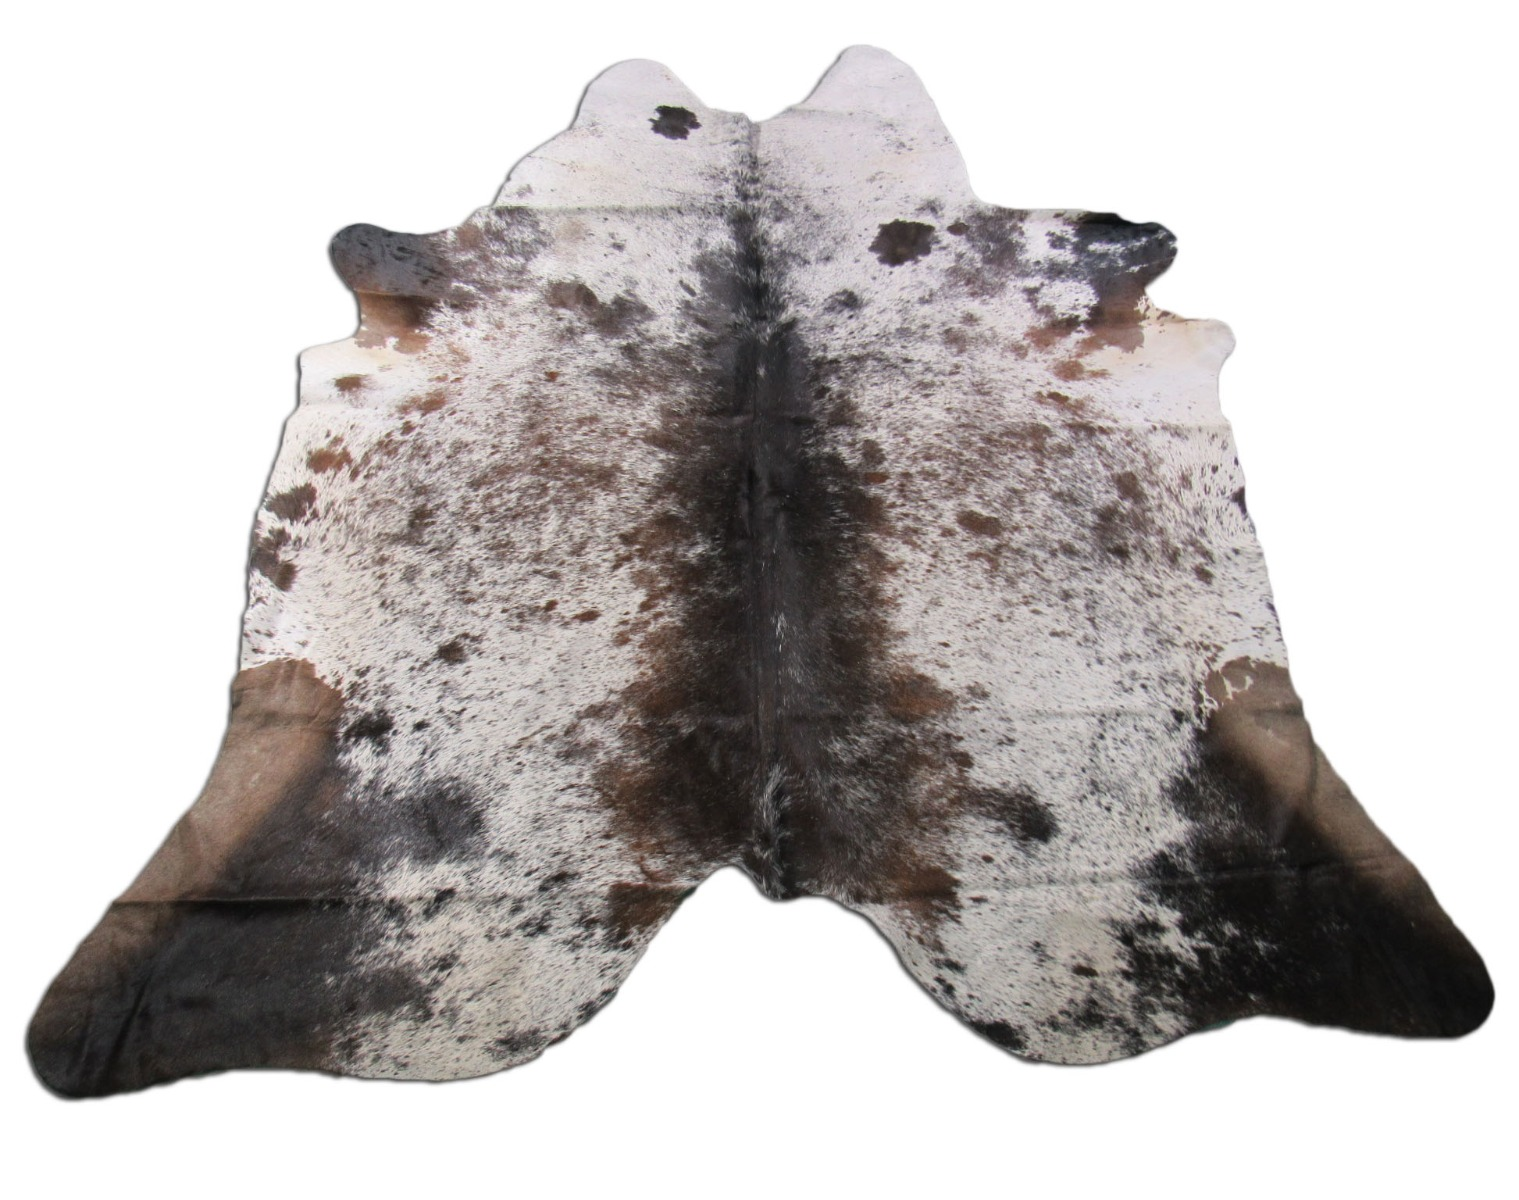 A-1264 Brown and White Salt & Pepper Cowhide Rug Size: 7' X 6 3/4'